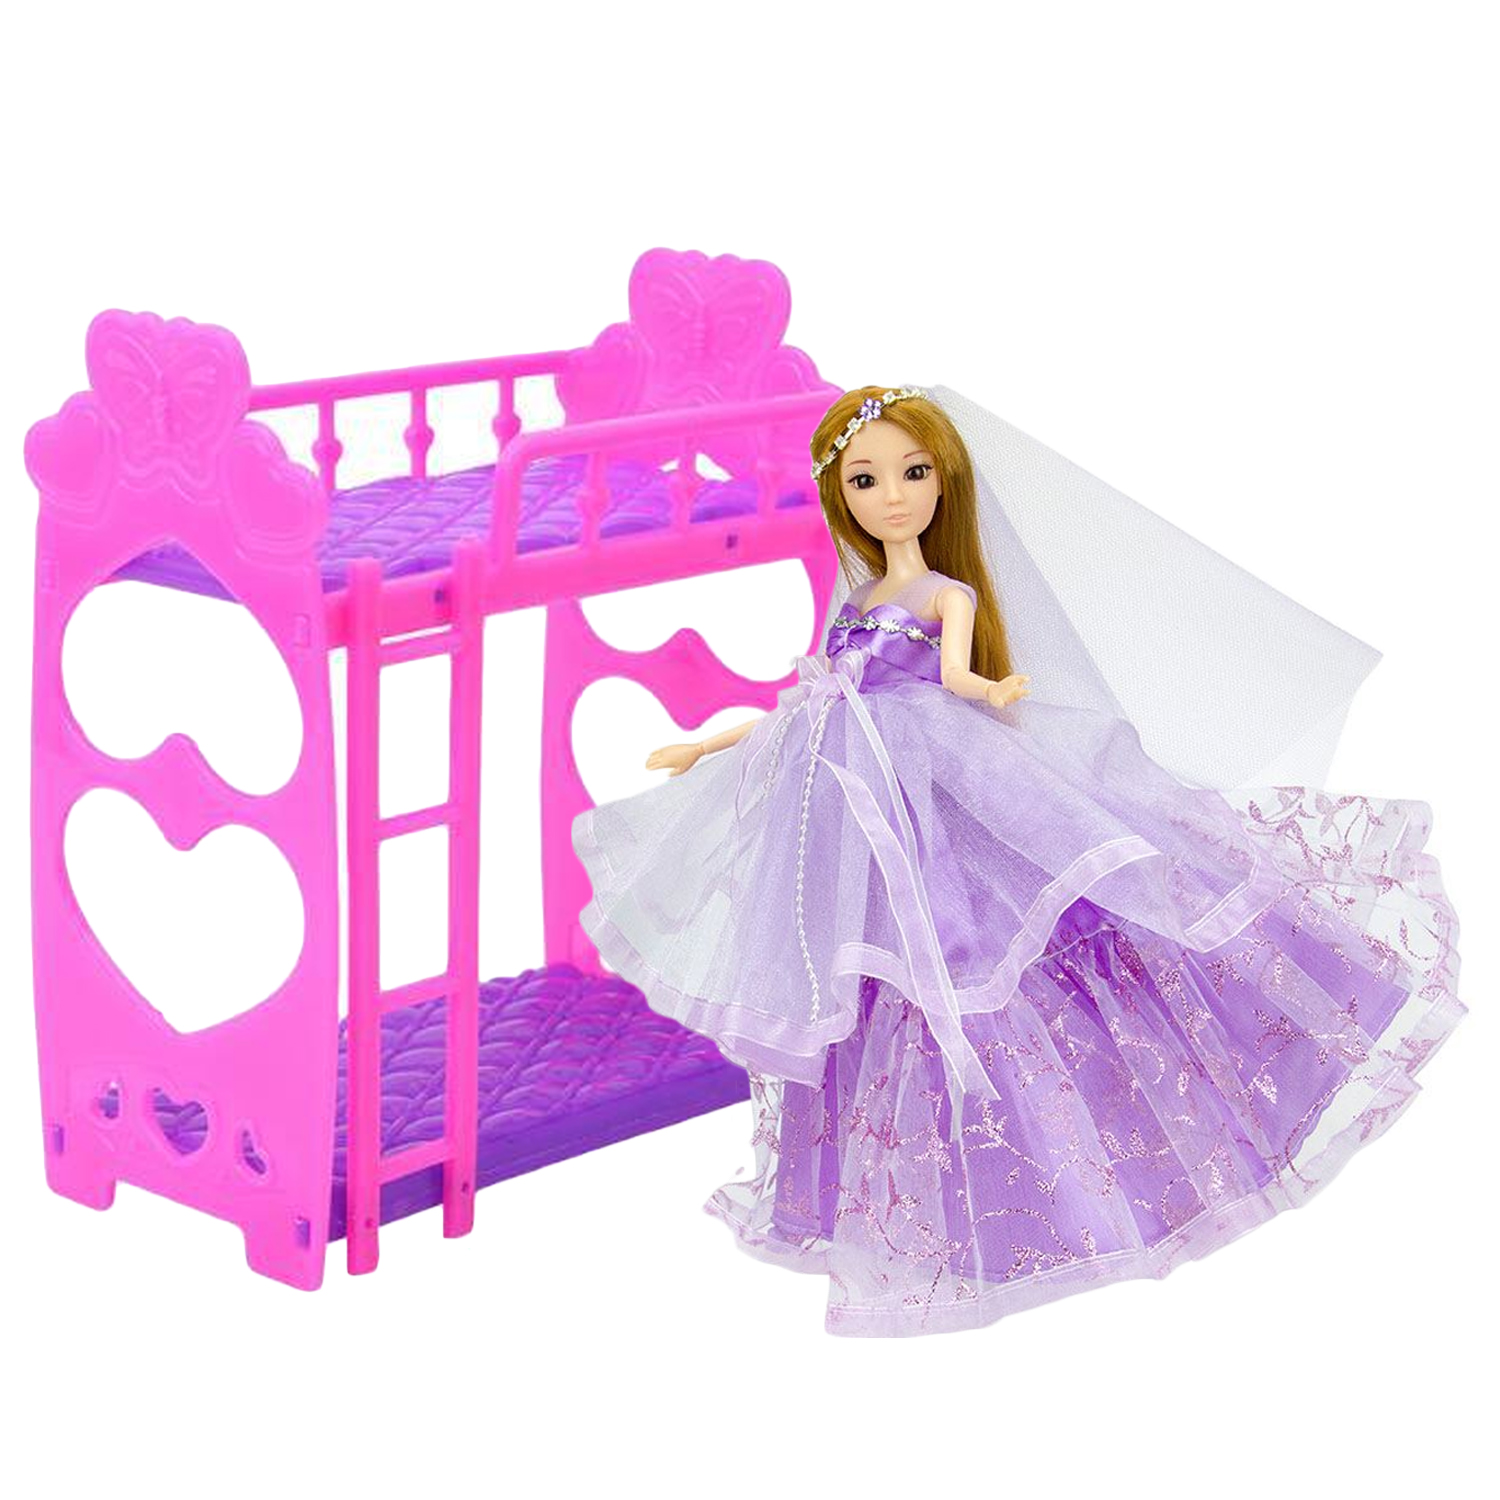 Besegad Doll House Mini Cute Plastic Double Bed Bedroom Furniture Accessories Toy Prop For Barbie Children Girls Birthday Gifts